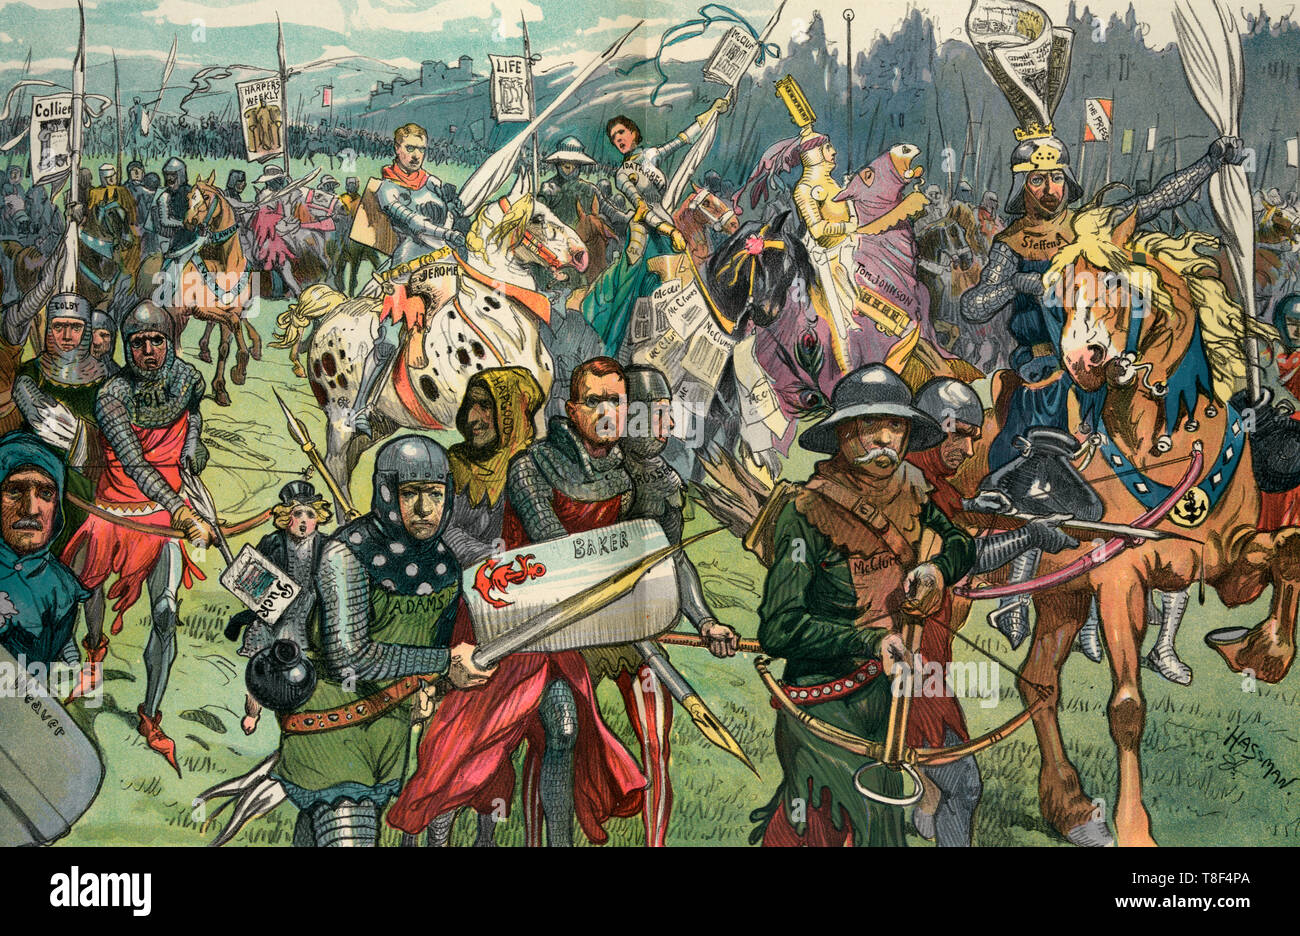 The crusaders - Illustration shows a large group of politicians and journalists as knights on a crusade against graft and corruption. Many carry large pens like a lance; periodical mentioned are 'Colliers, Harper's Weekly, Life, Puck, and McClure's' Magazine. 1906 - Stock Image